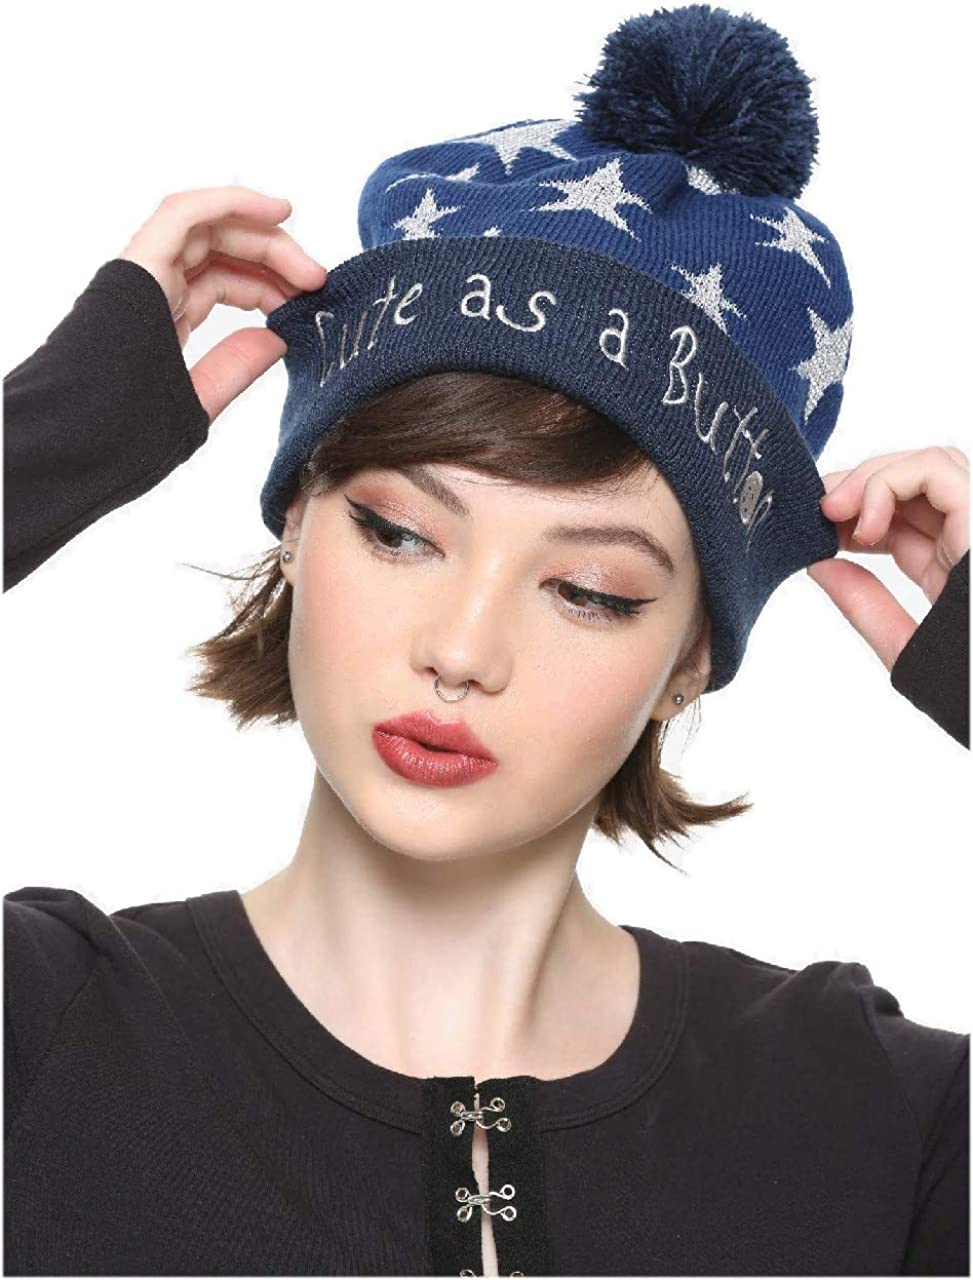 Hot Topic Coraline Star Watchman Pom Beanie At Amazon Women S Clothing Store